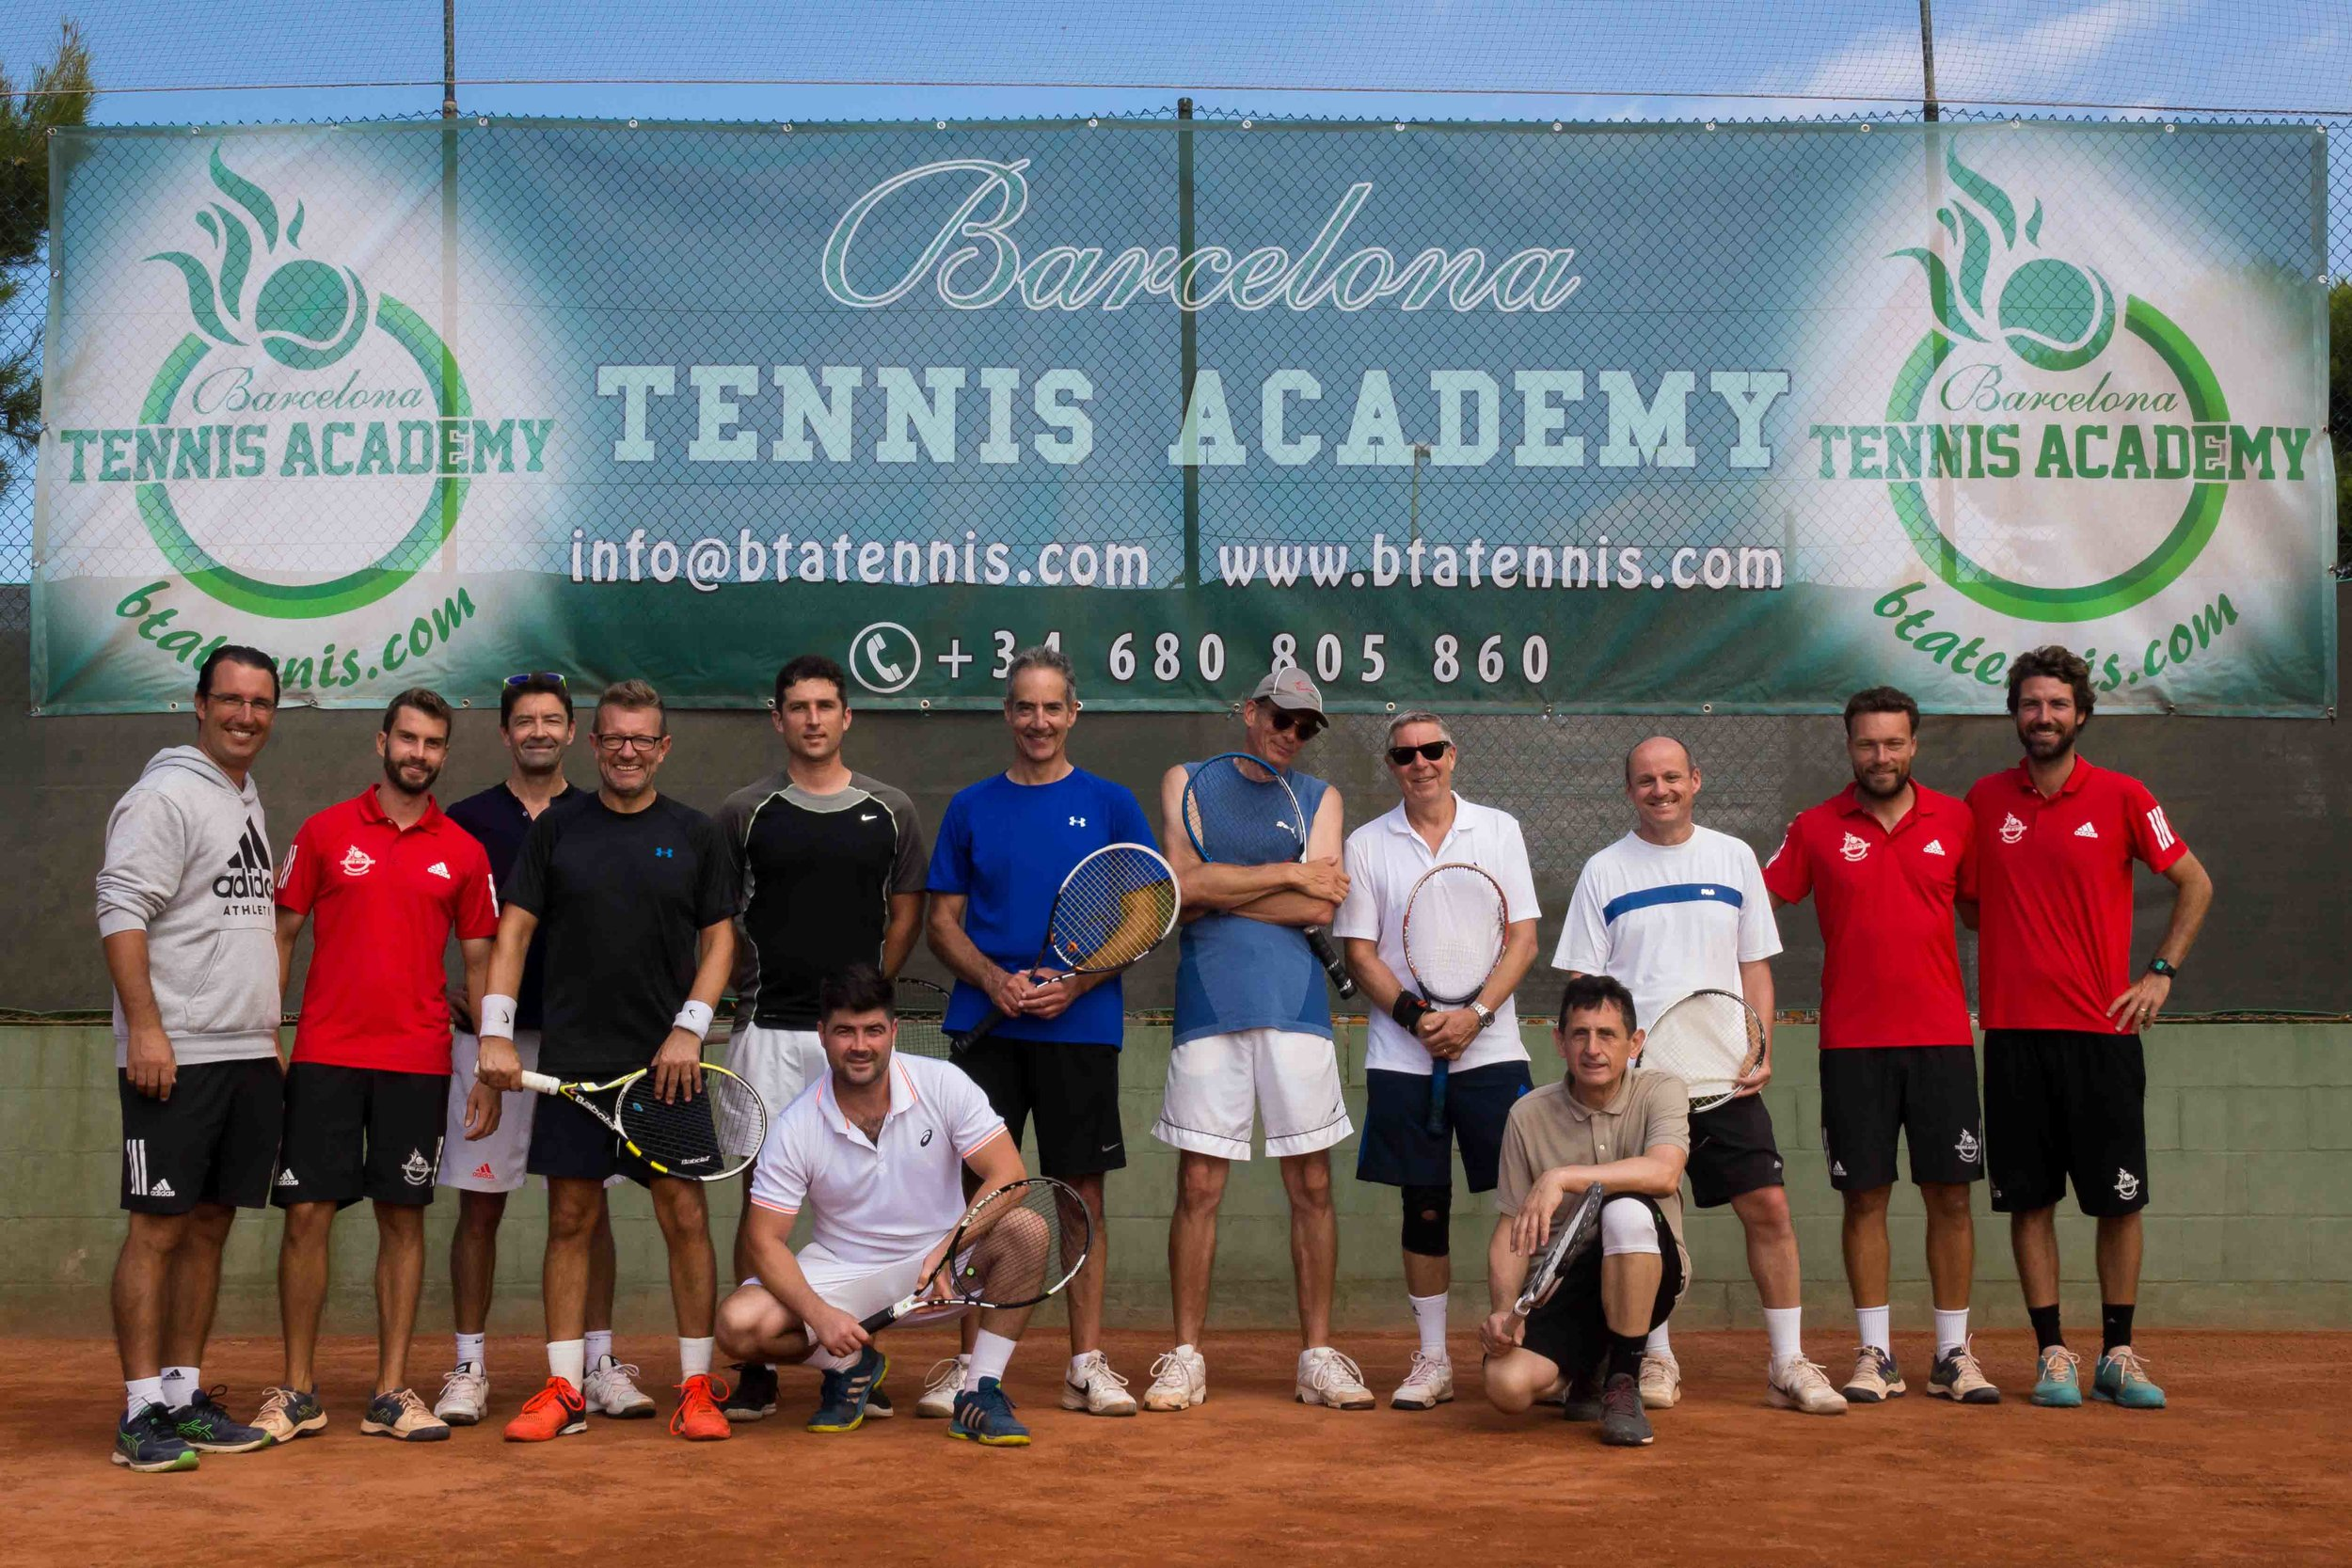 09:30 All players arrive at club.  09:30-10:00 Fitness warm-up  10:00-12:00 Tennis training: technical drills  12:00 Lunch  14:00-16:00 Tennis training, tactical drills and match play  16:00 Cool-down and stretching